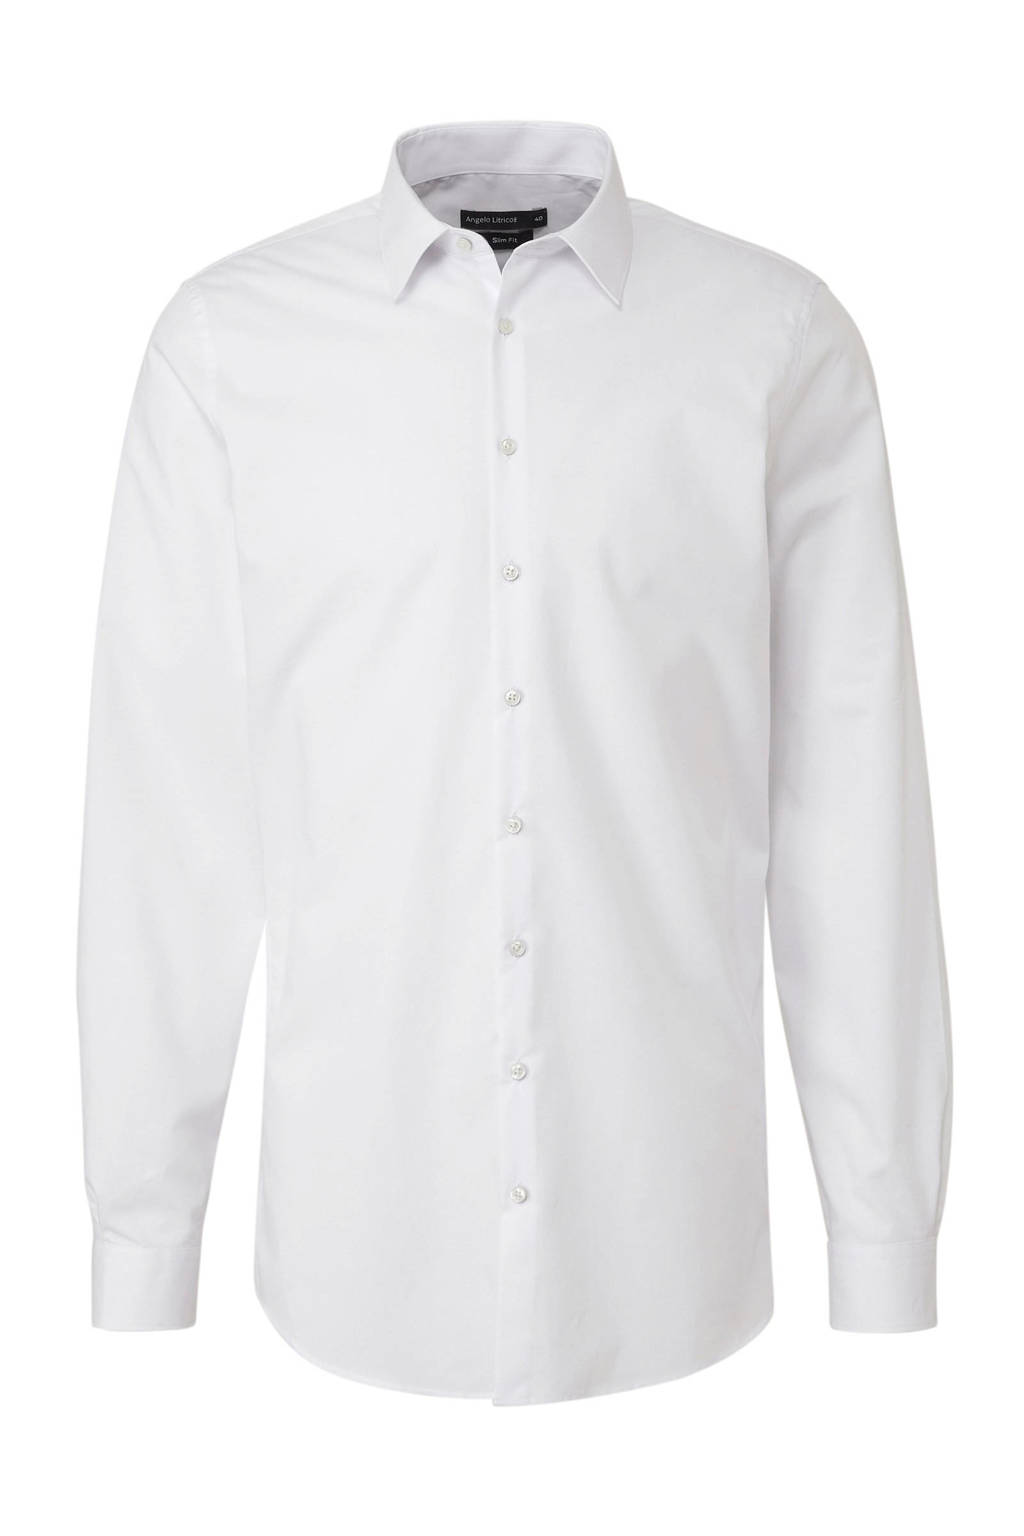 C&A Angelo Litrico slim fit overhemd, Wit